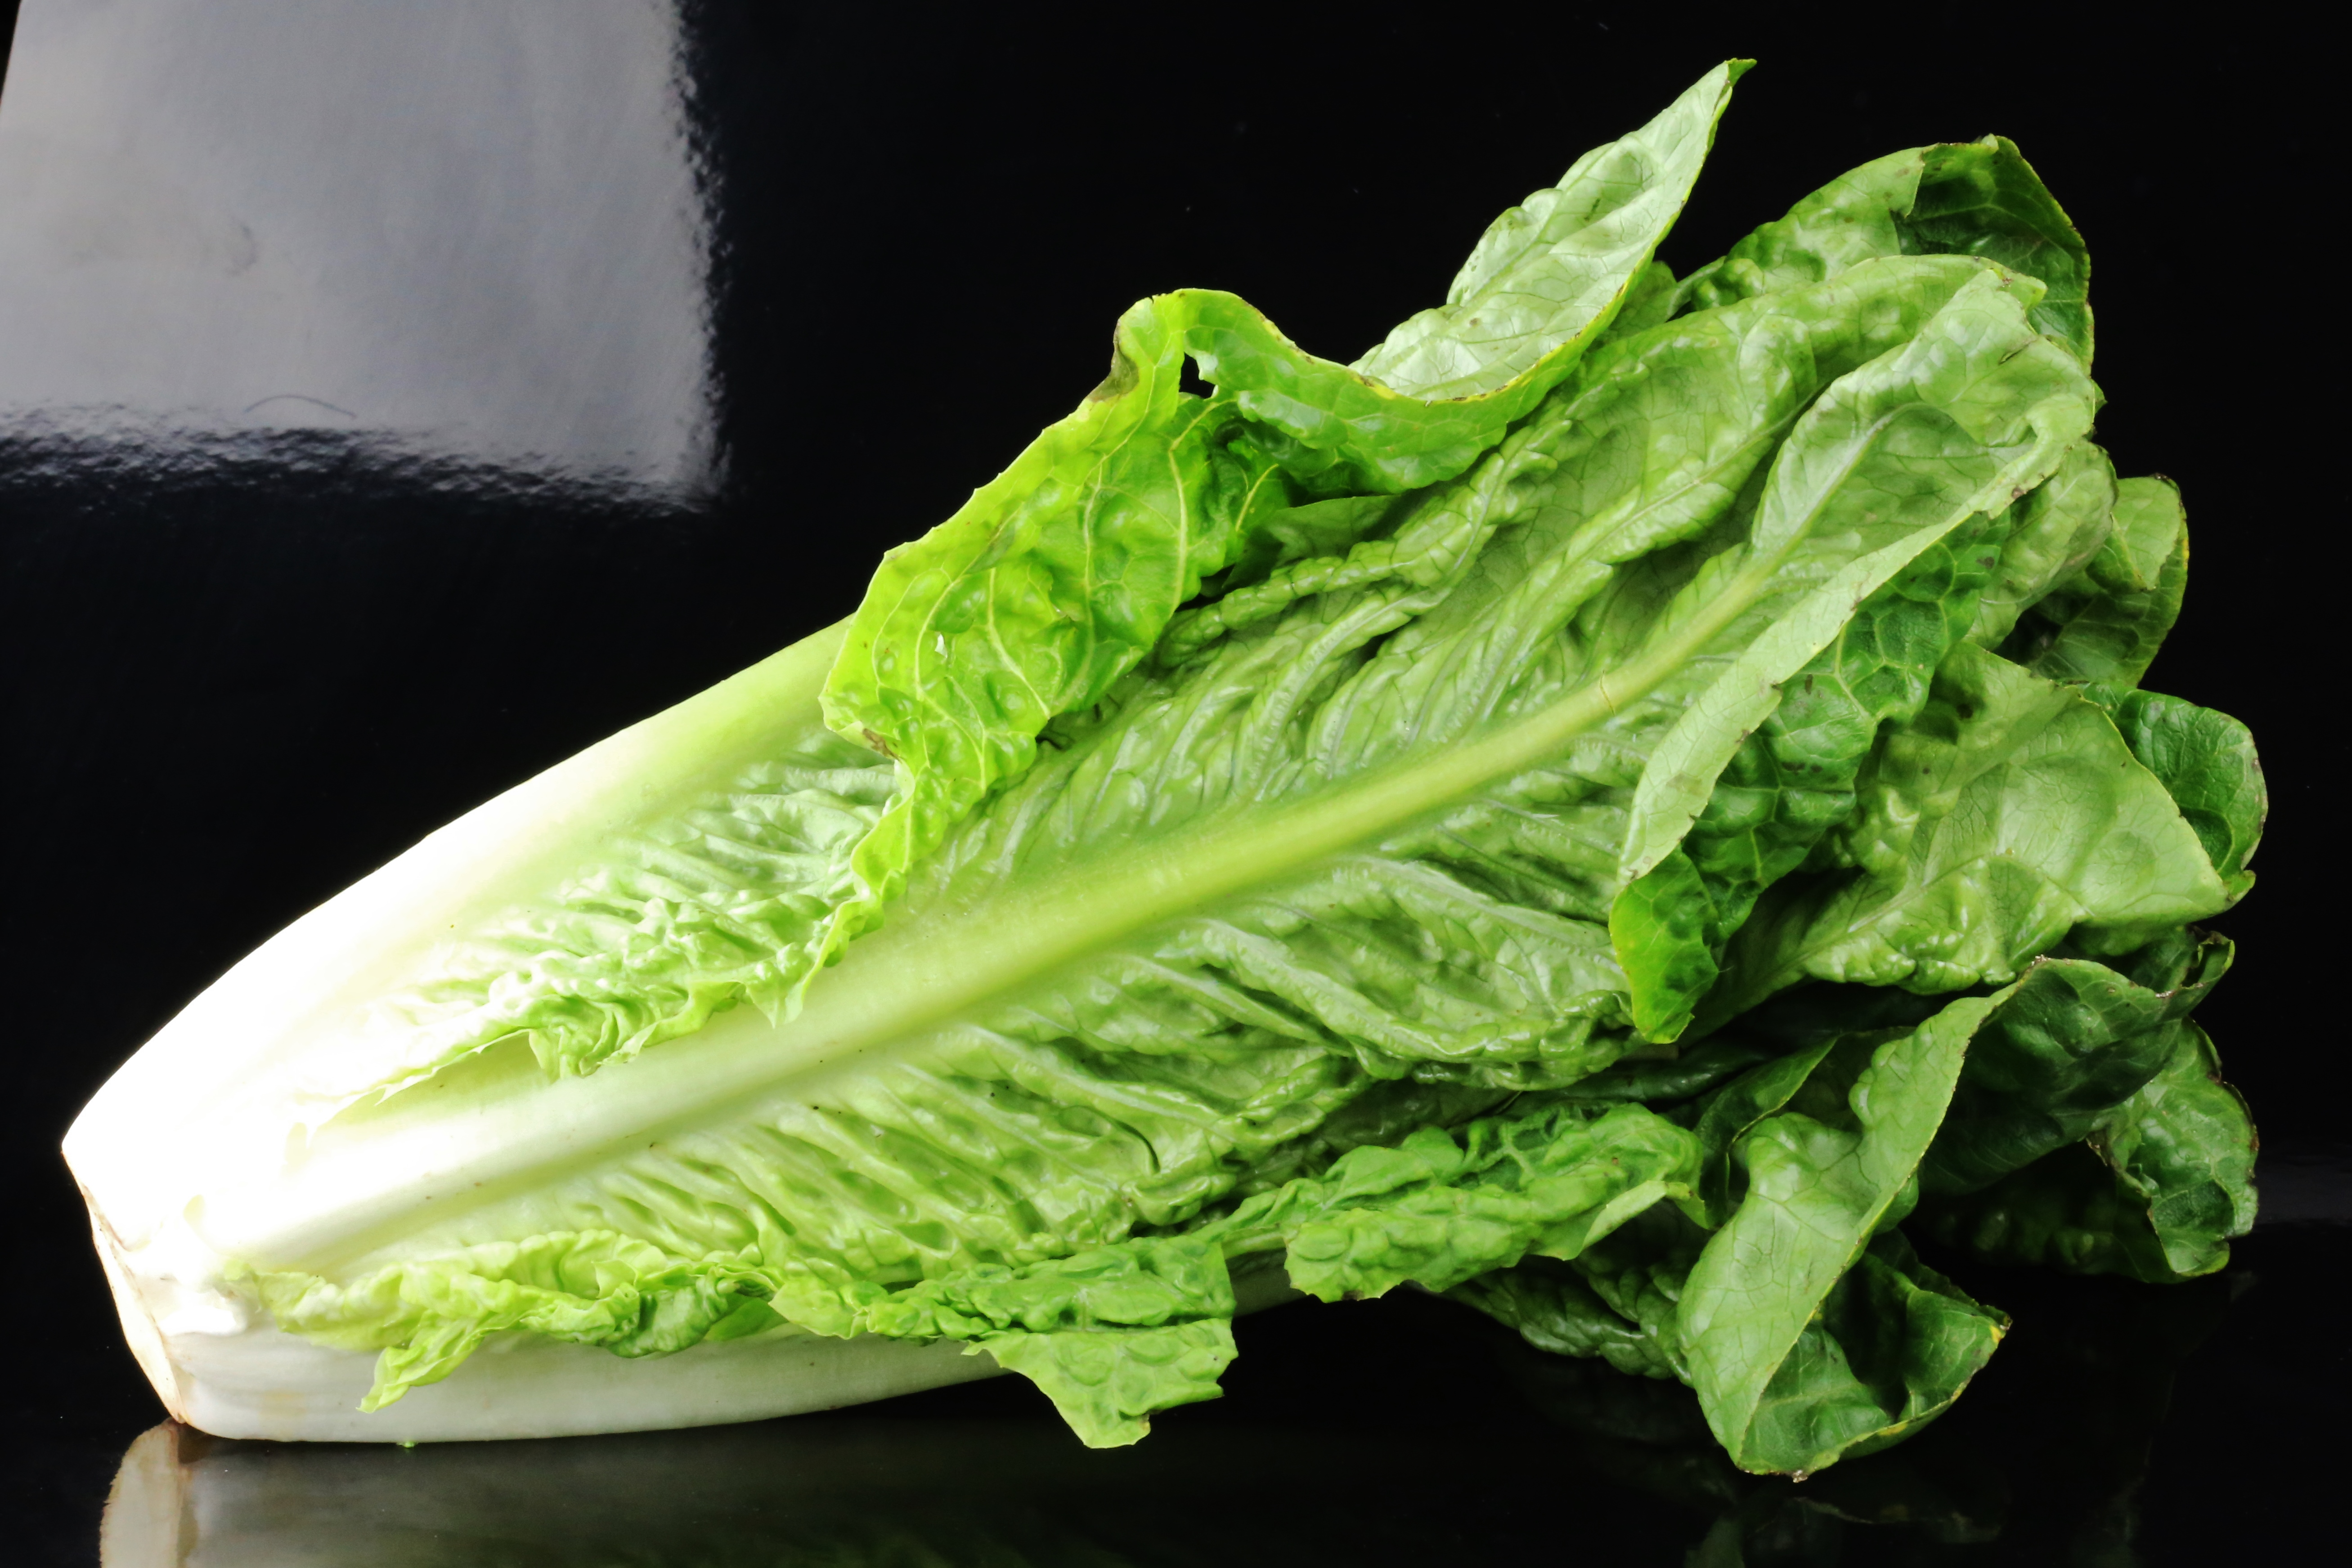 People in 11 states have gotten sick from romaine lettuce tainted with E. coli — here's how to stay safe